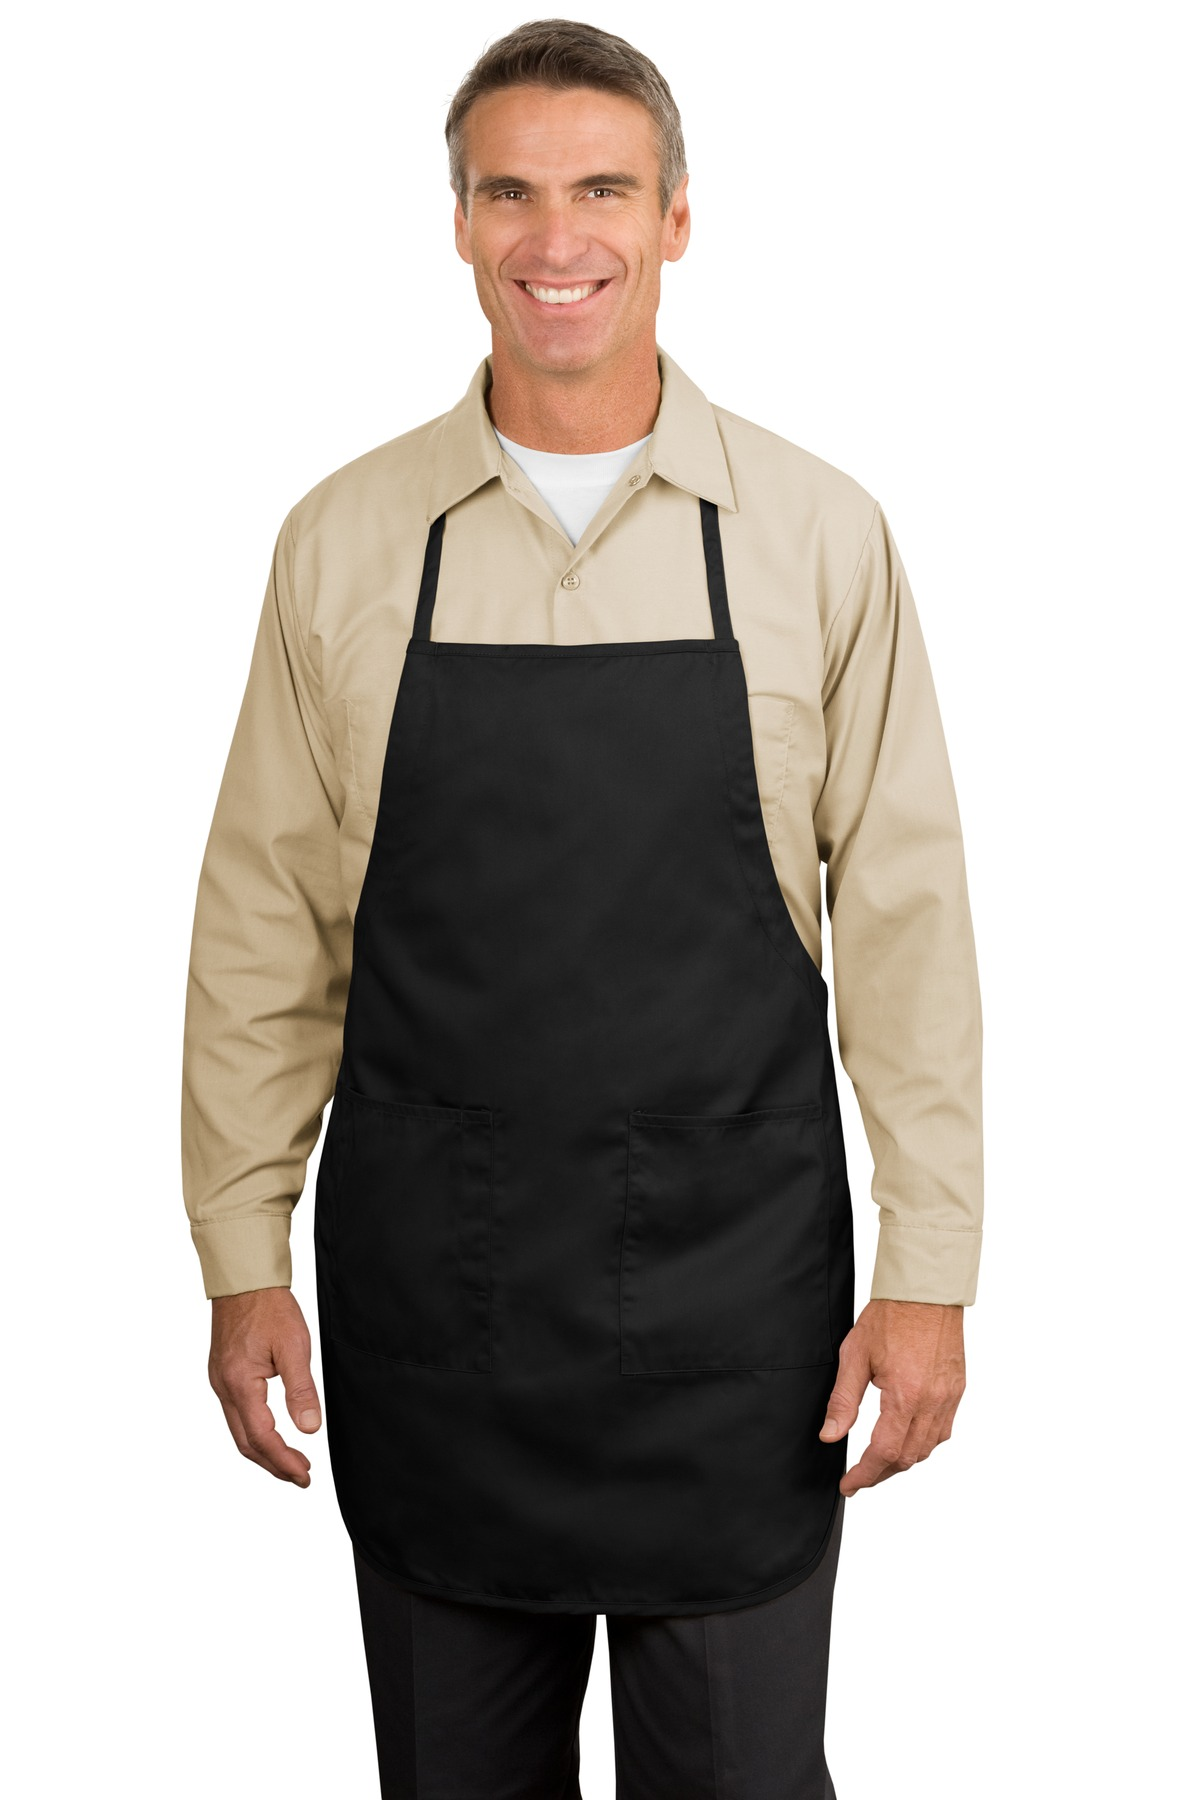 Port Authority ®  Full-Length Apron.  A520 - Black